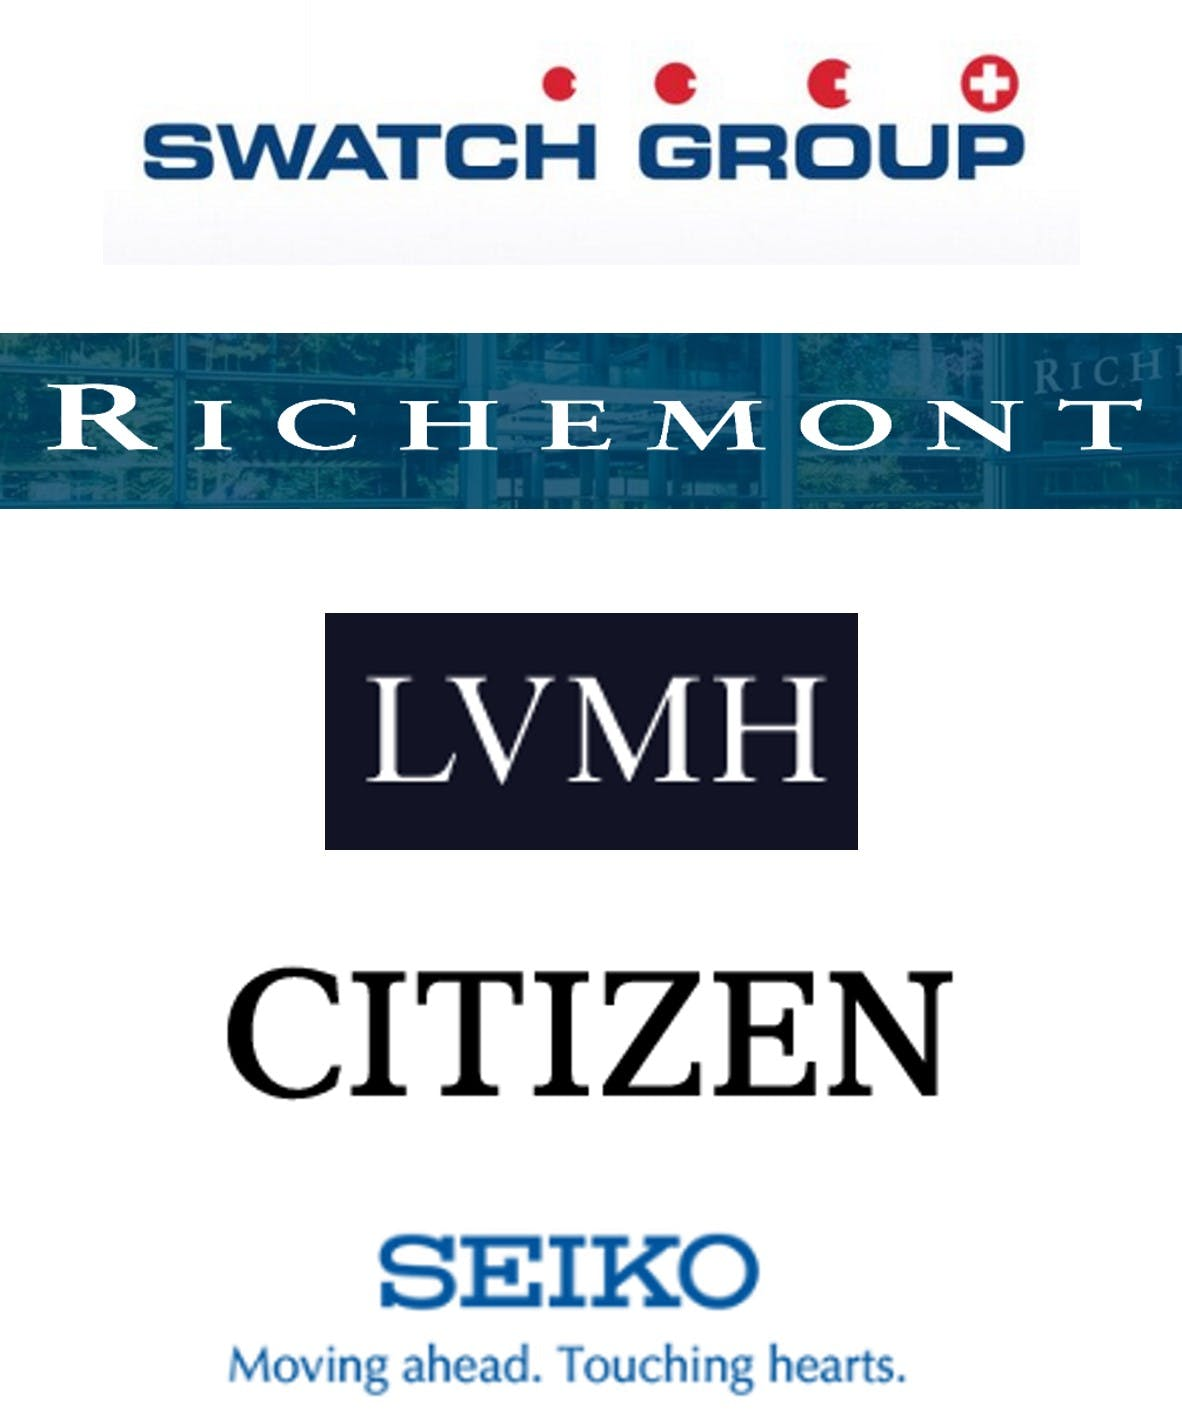 The world's five largest watch companies.